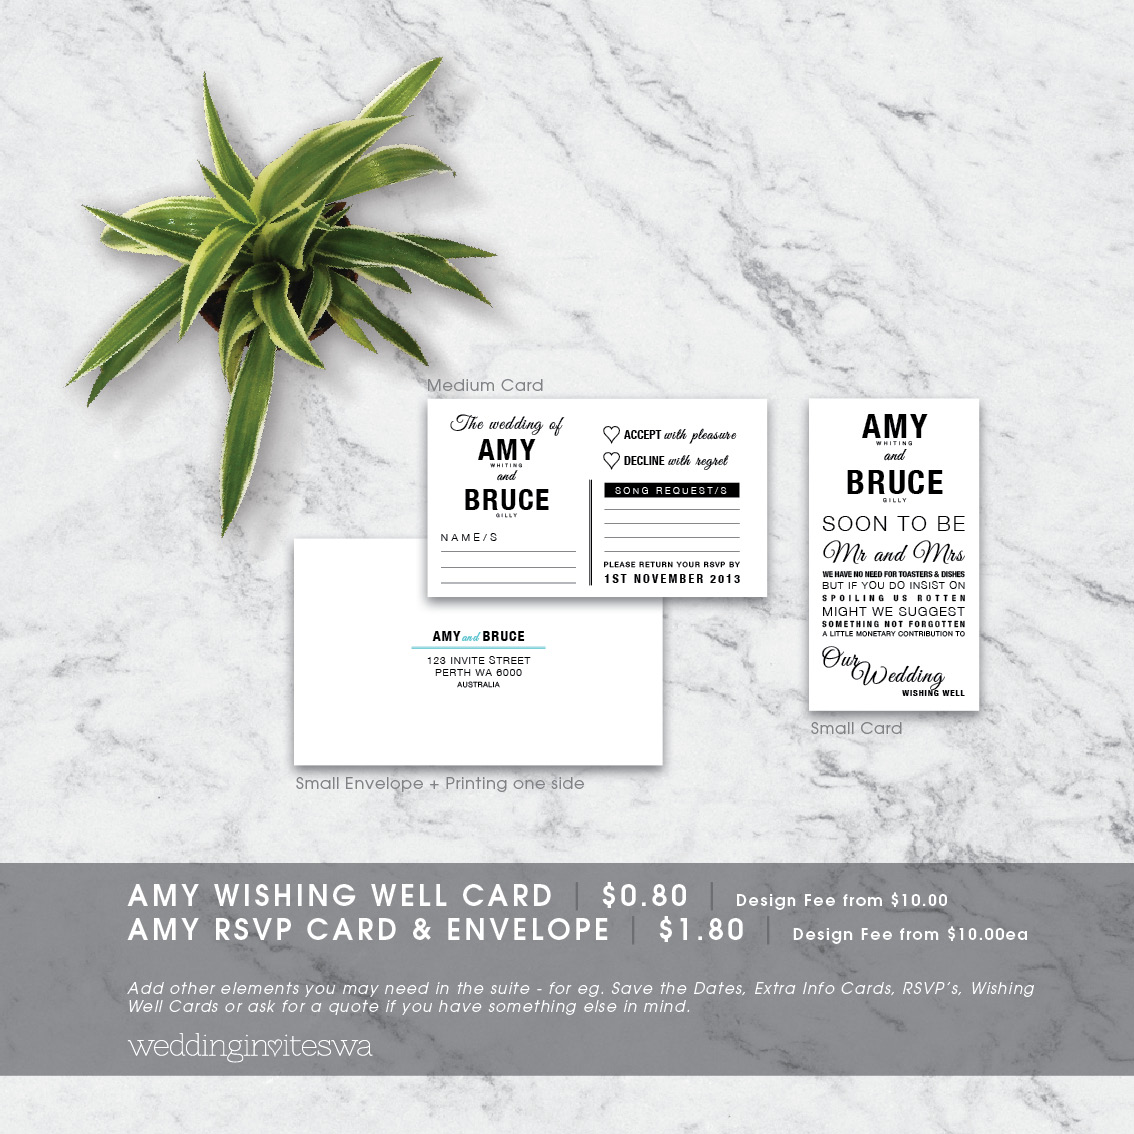 AMY_extra cards